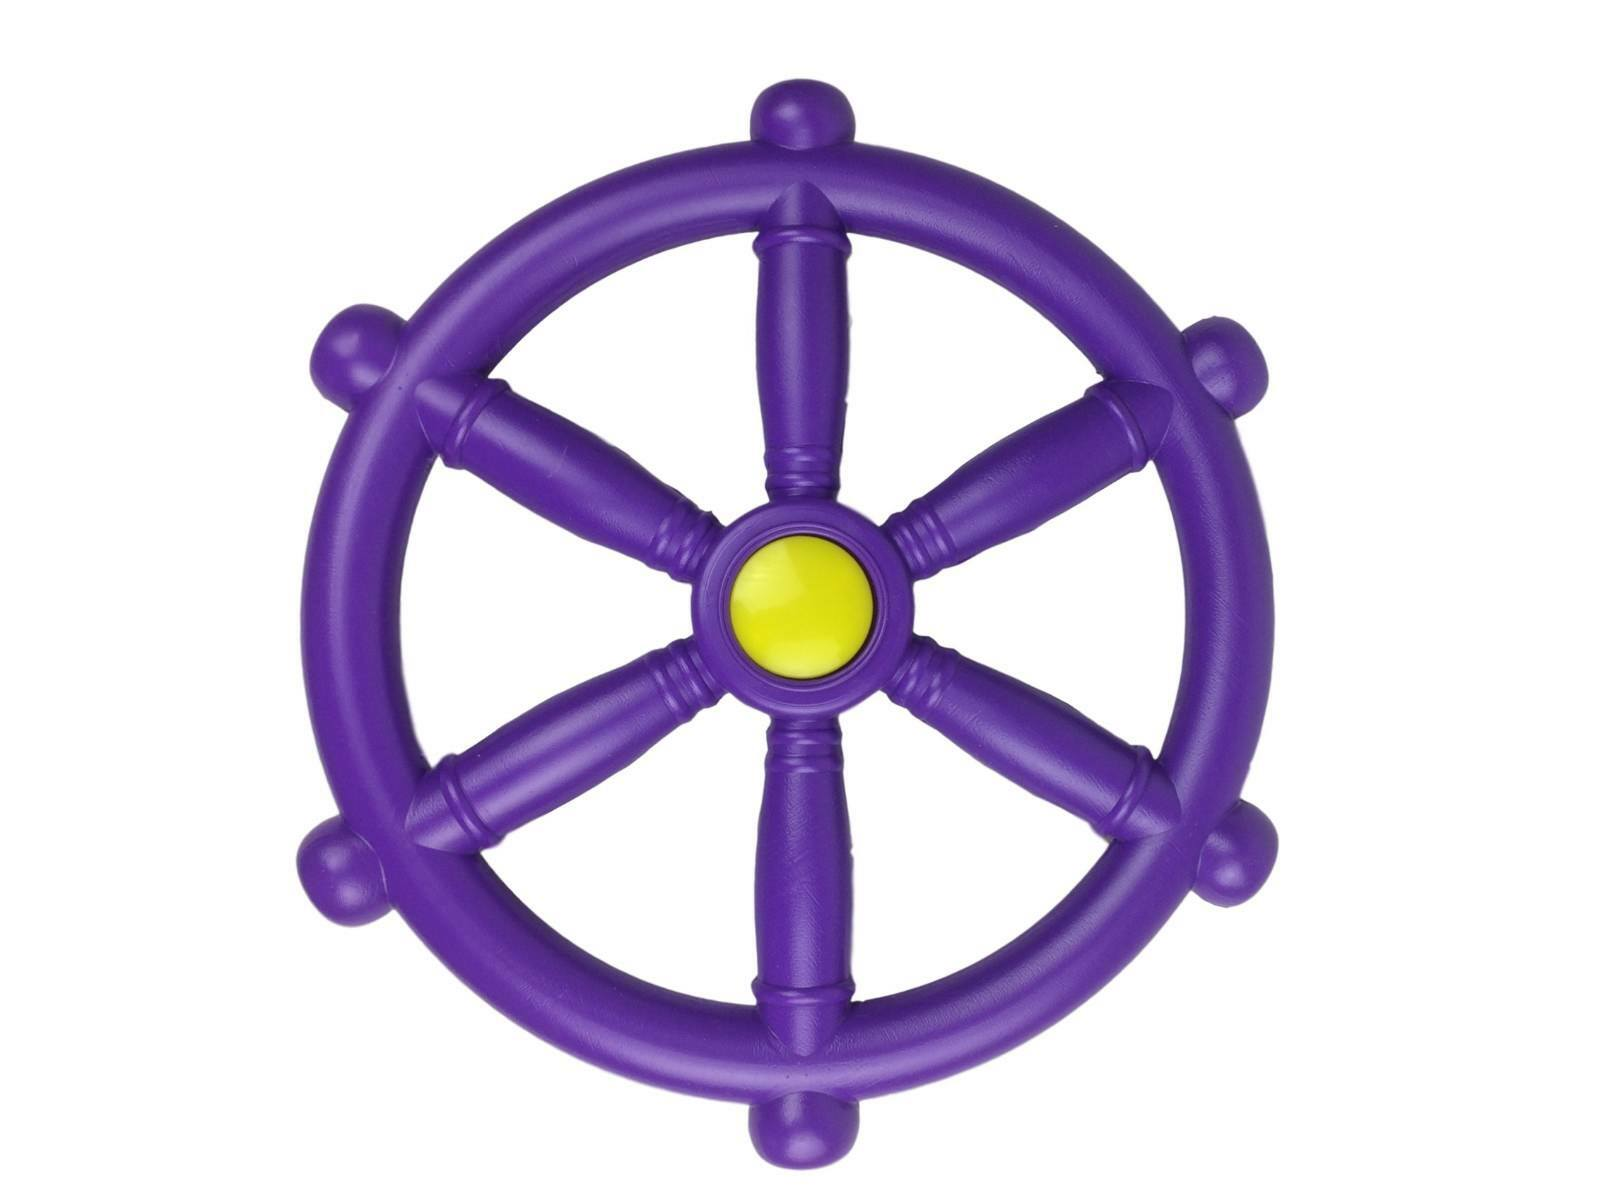 Kids Climbing Climbing Climbing Frame Accessory Purple Toy Bundle With a FREE Pirate Flag 83296c